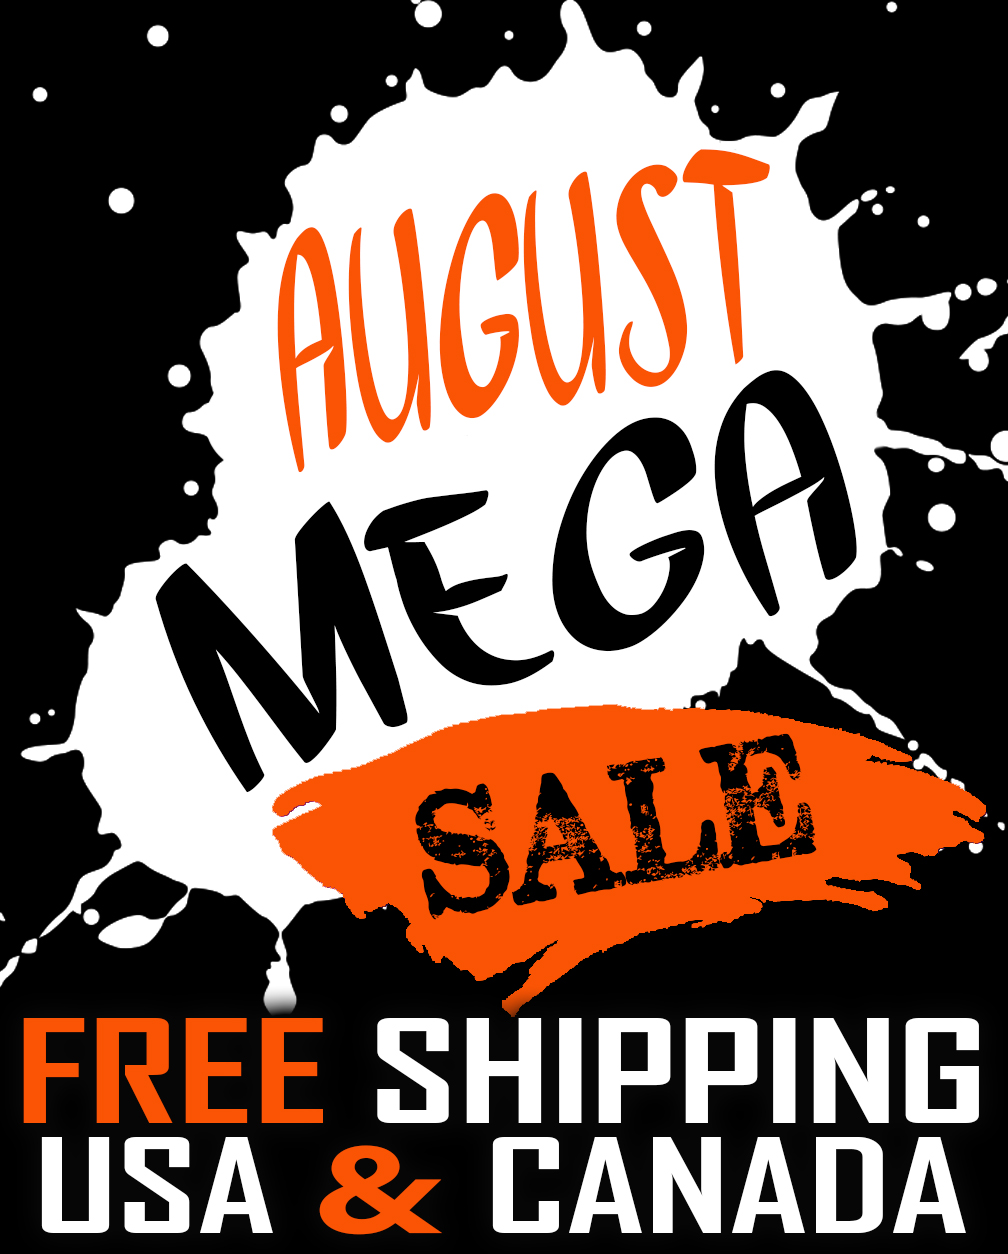 august-mega-sale-free-shipping.jpg